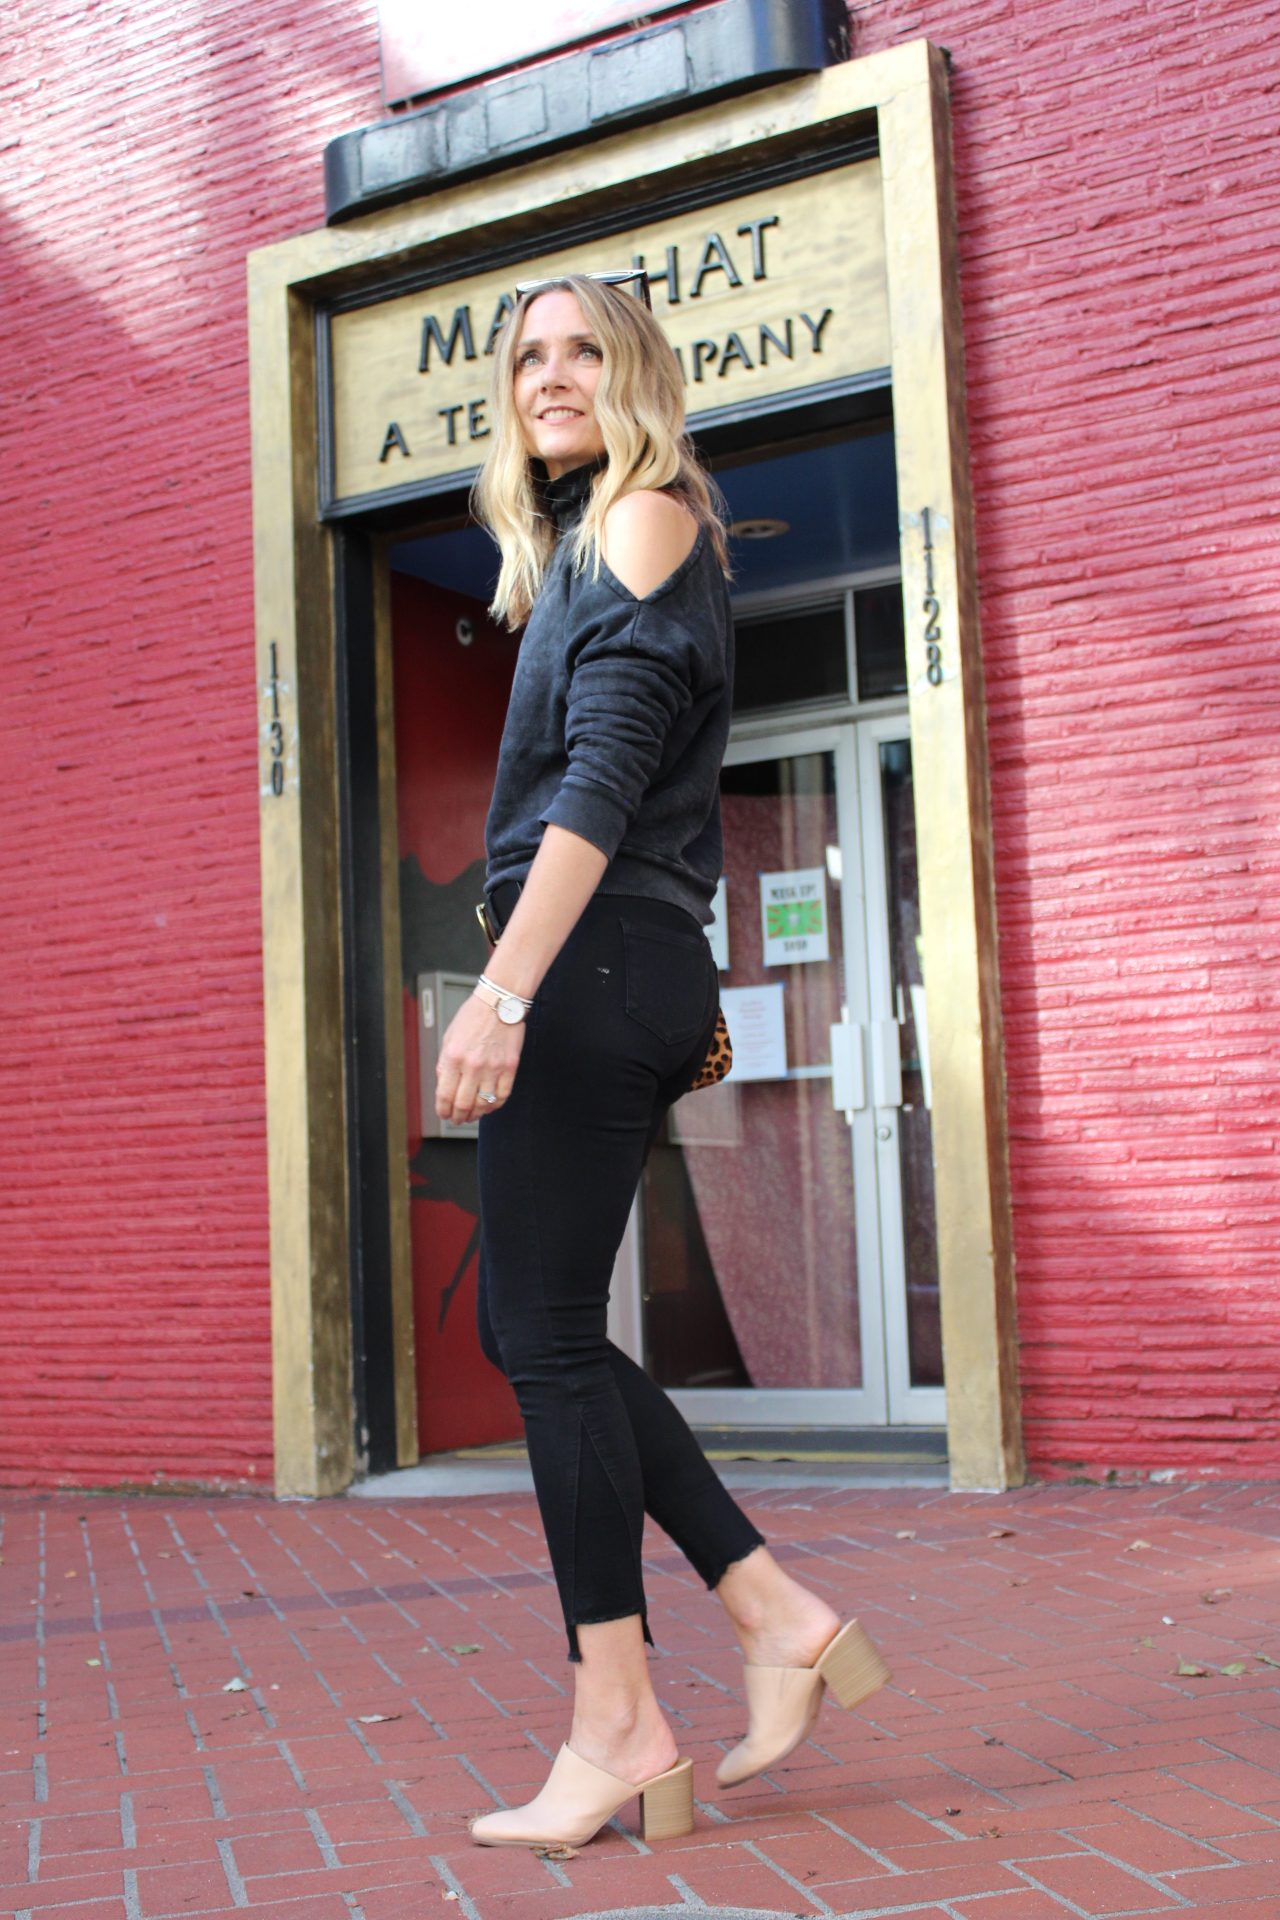 black top with black jeans and tan heeled mules